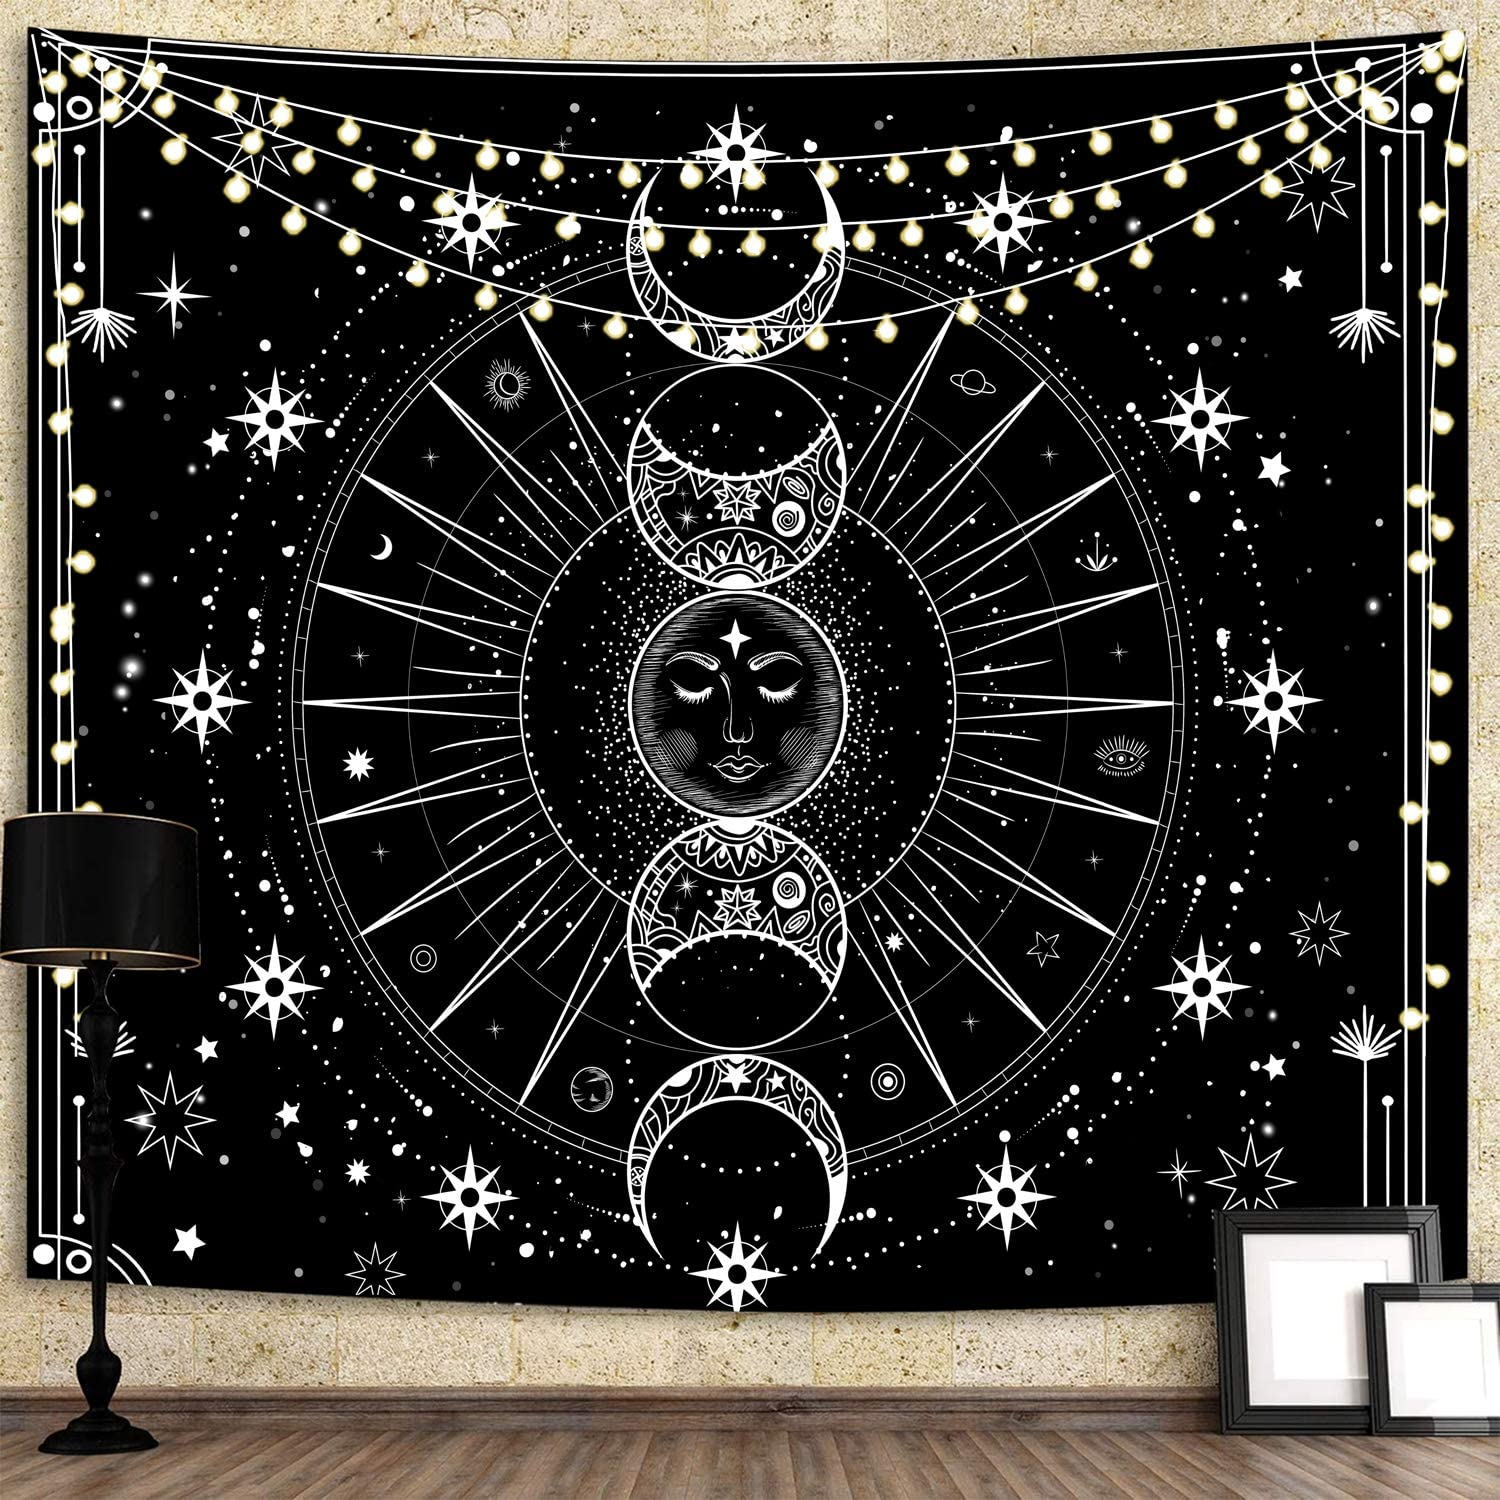 Bacazue Sun Moon Tapestry Wall Hanging Sun with Stars Space Psychedelic Black and White Wall Tapestry for Bedroom, Living Room, Dorm Home Wall Decor (29.5